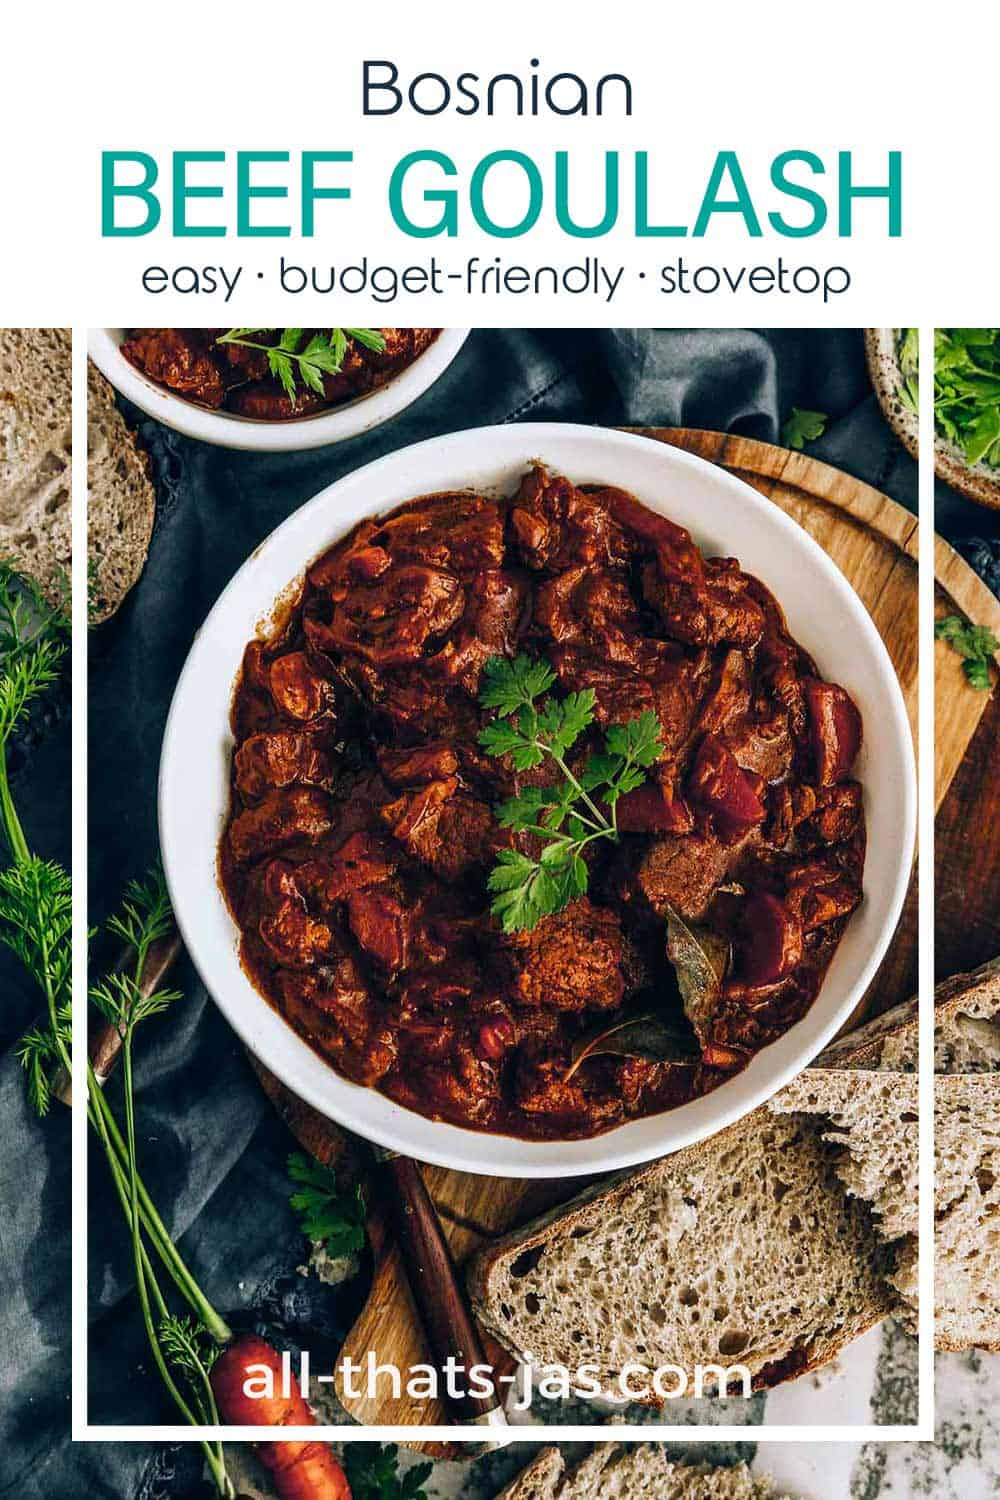 An overhead shot of the beef dish in a bowl and text overlay